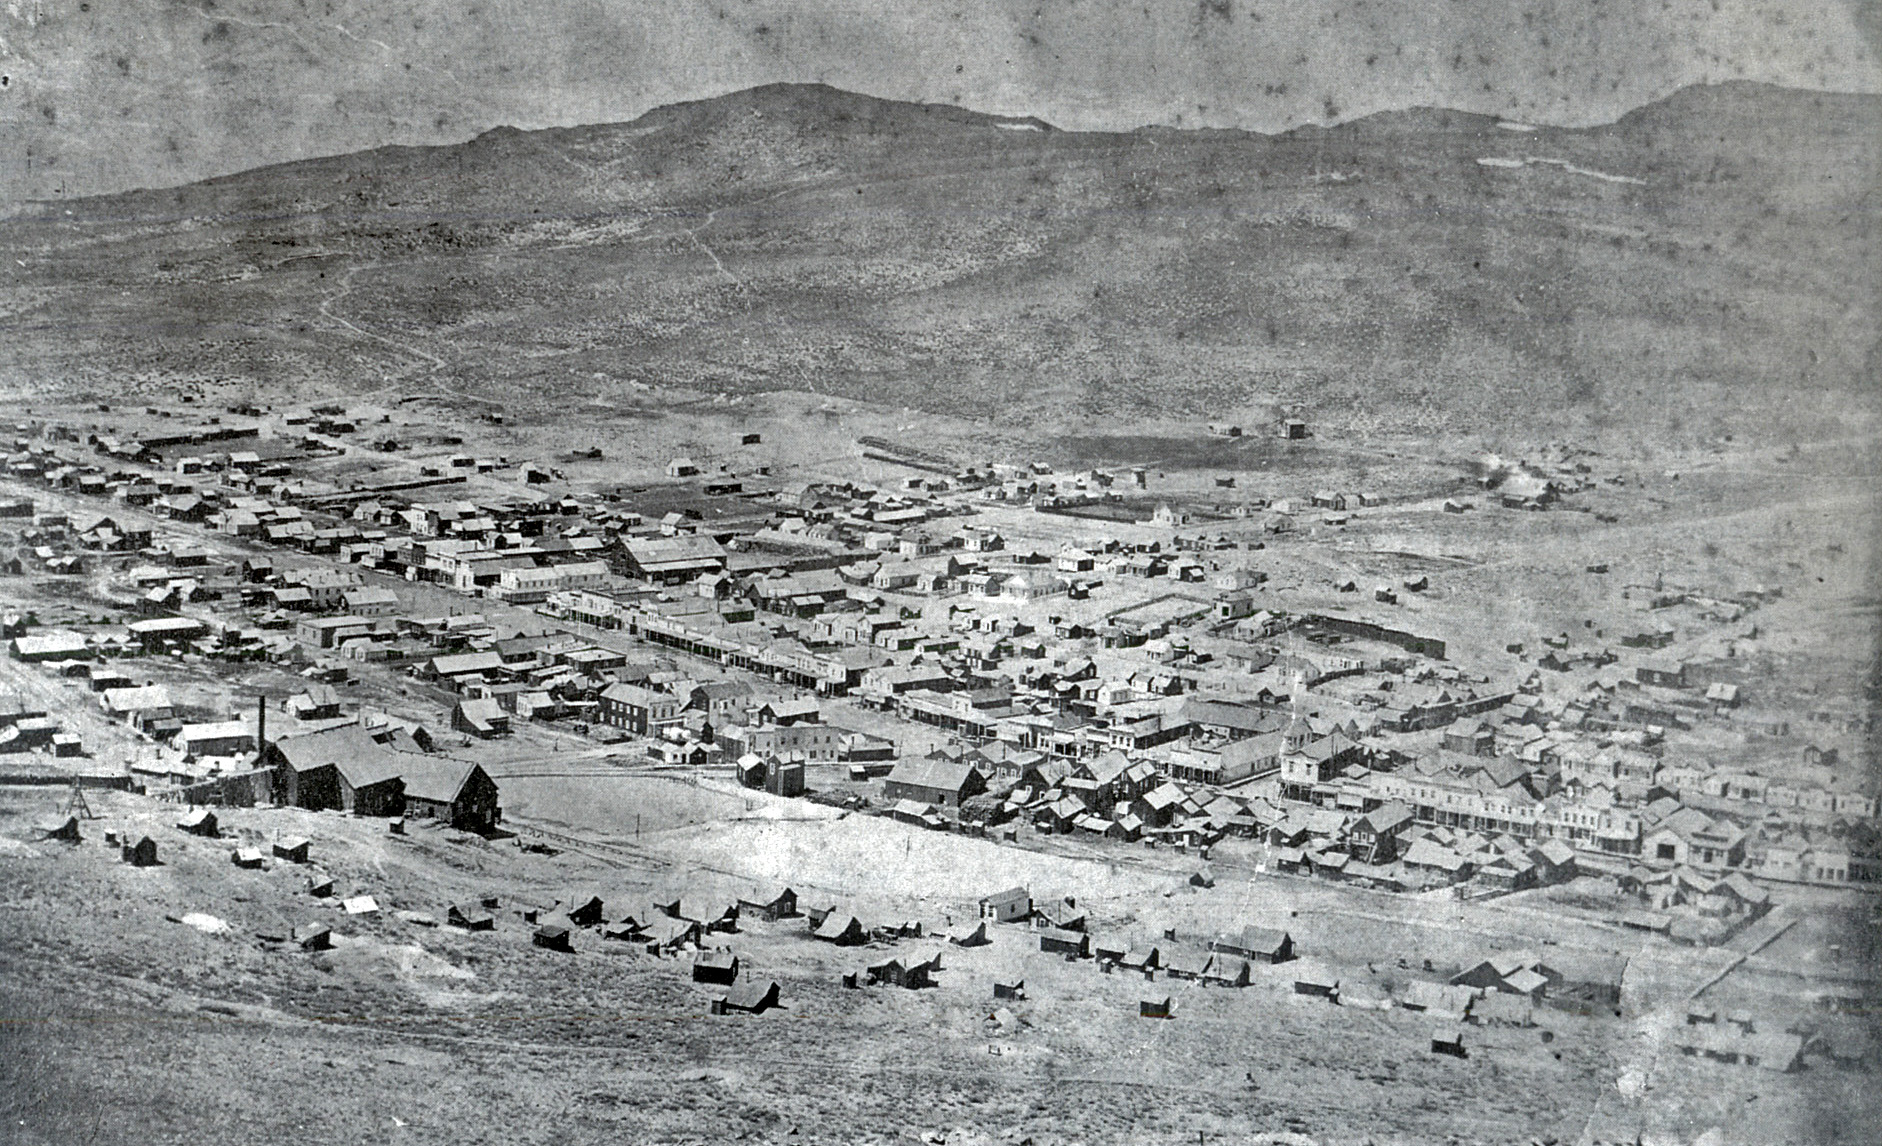 Bodie before the fires, circa 1880